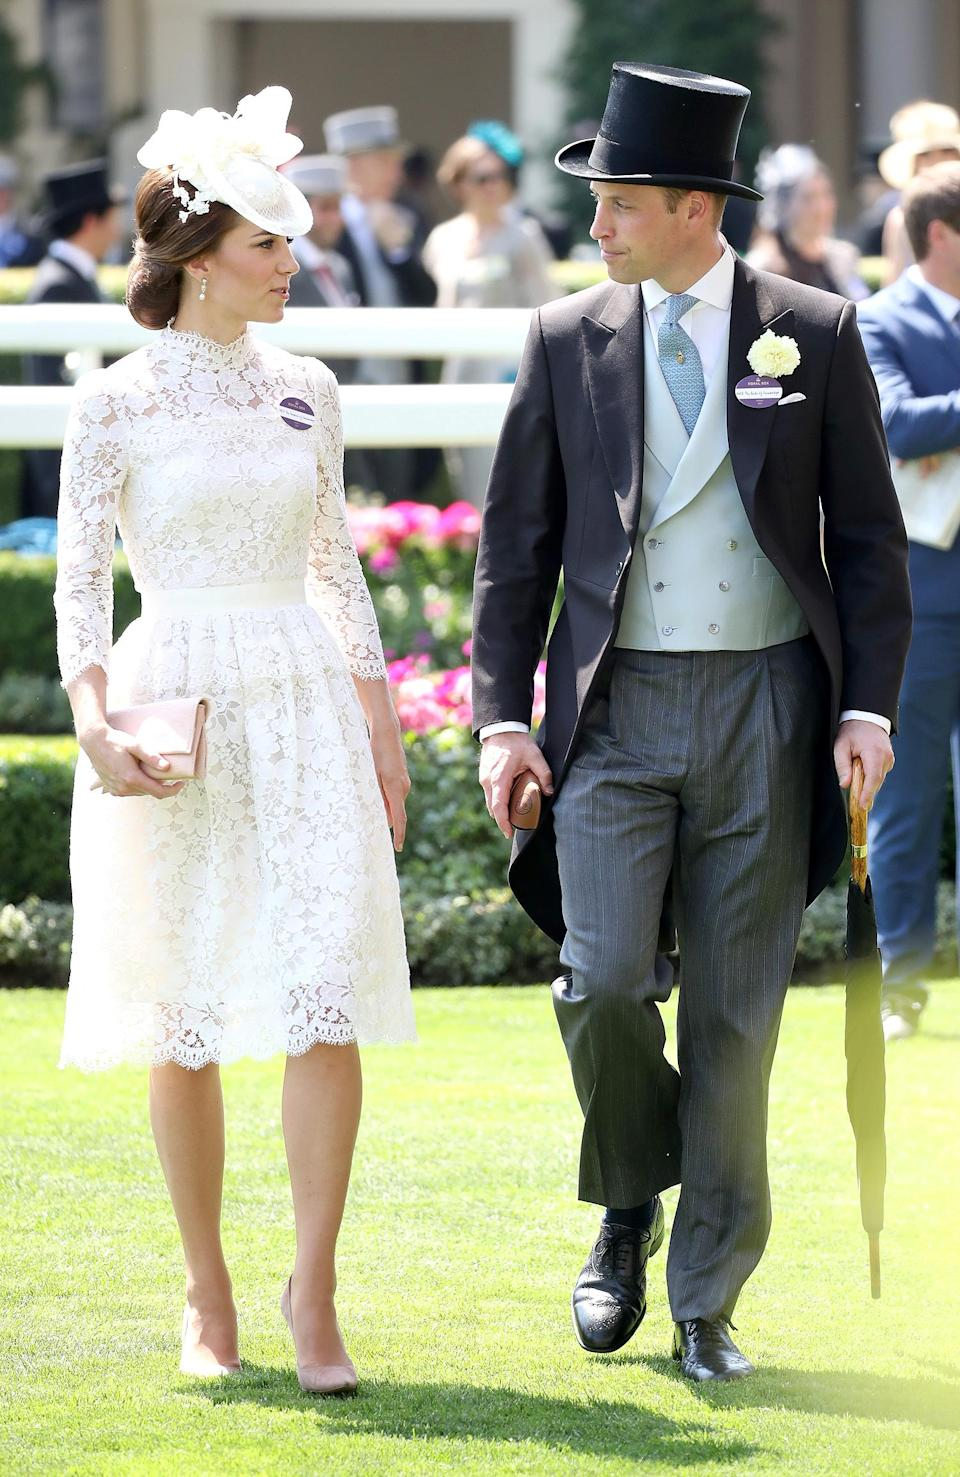 <p><strong>When:</strong> June 20, 2017 <strong>Where:</strong> Royal Ascot horse races in Ascot, England <strong>Wearing:</strong> Alexander McQueen white lace dress <strong>Get the Look:</strong> Alexander McQueen Lace Mini Dress, $5,095; <span>farfetch.com</span> Anthropologie Darling Dress, $440; <span>anthropologie.com</span> Taylor Dresses Lace Sheath Dress, $139; <span>nordstrom.com</span> Jessica Howard Lace Illusion Sheath Dress, $89; <span>macys.com</span></p>